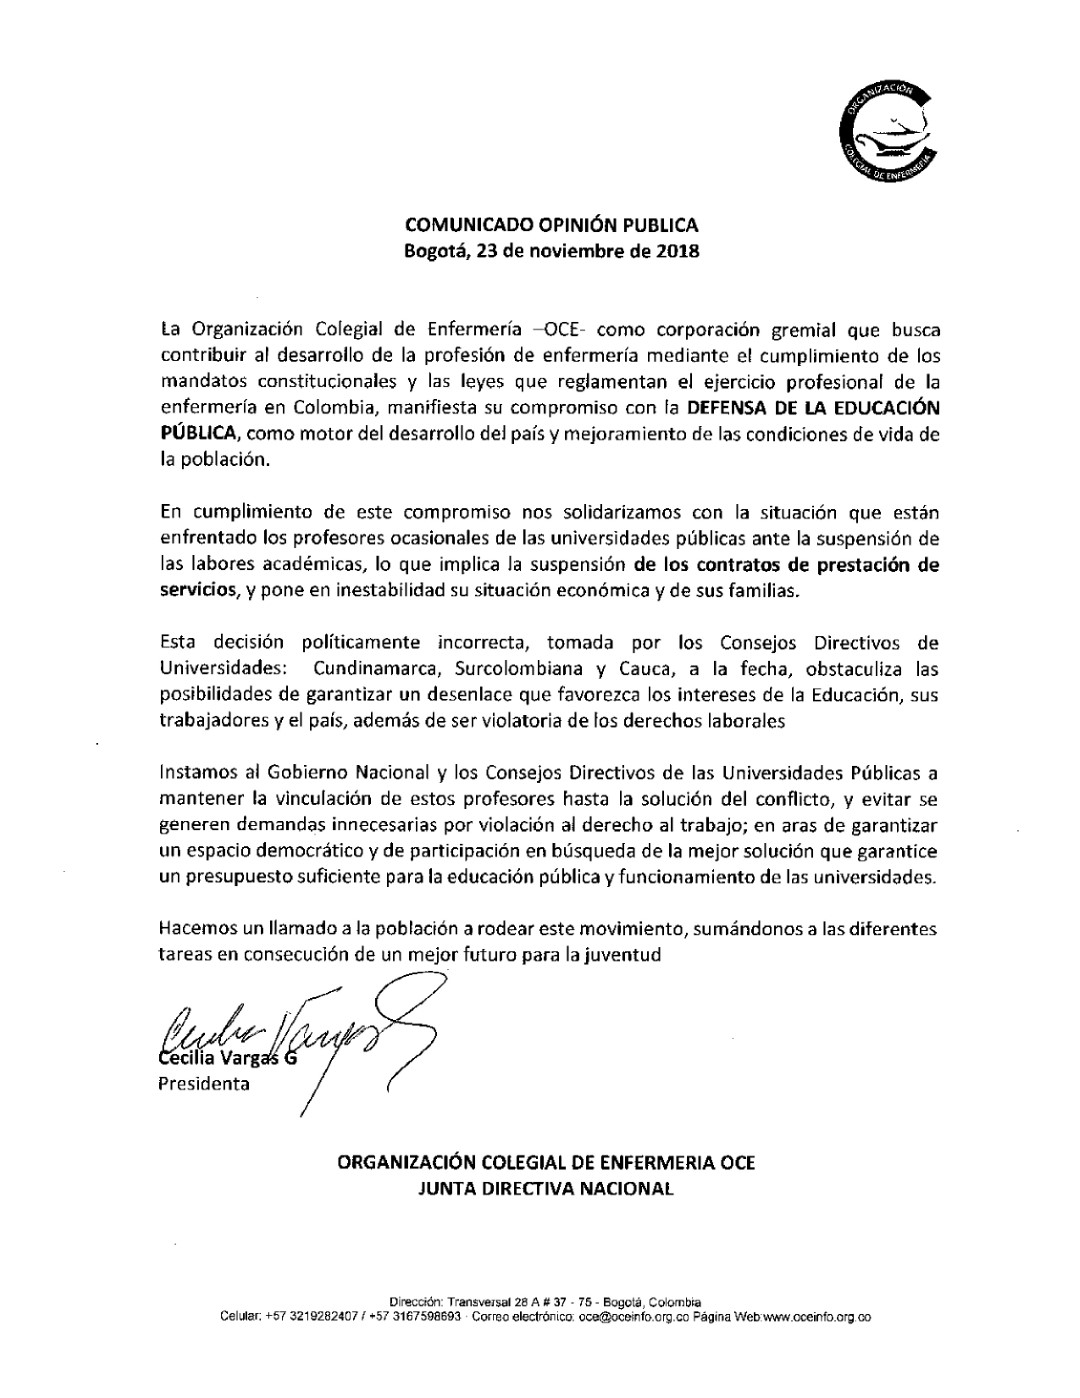 2018 11 23 COMUNICADO OPINION PUBLICA 23NOV